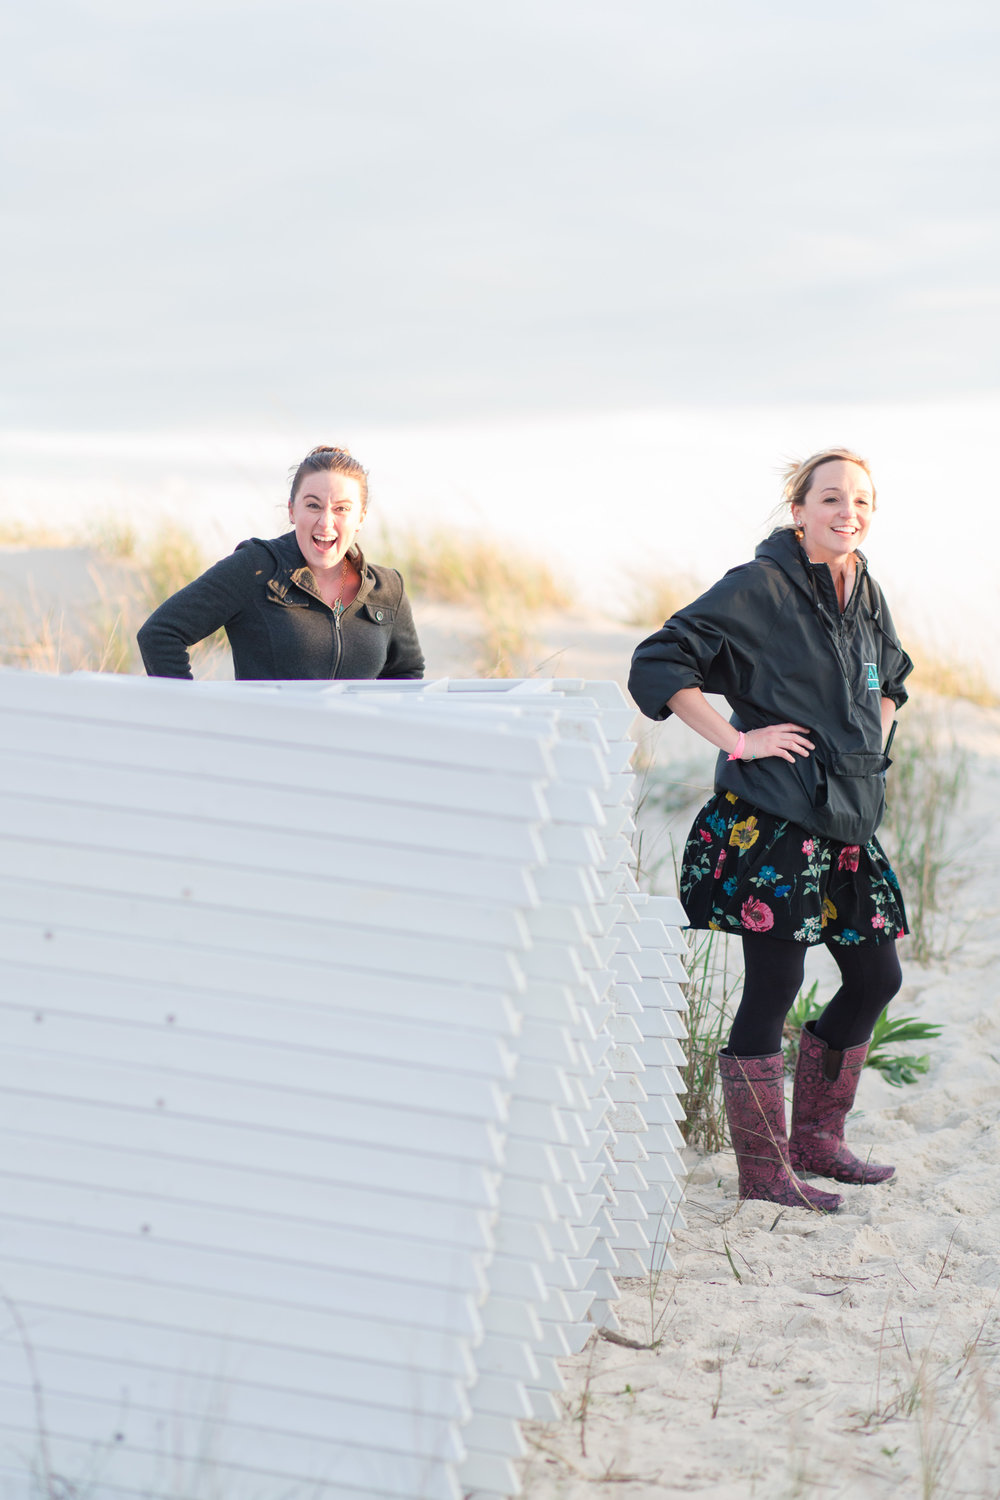 These are the faces of two girls carrying over a hundred chairs off a stormy beach and loving their job!